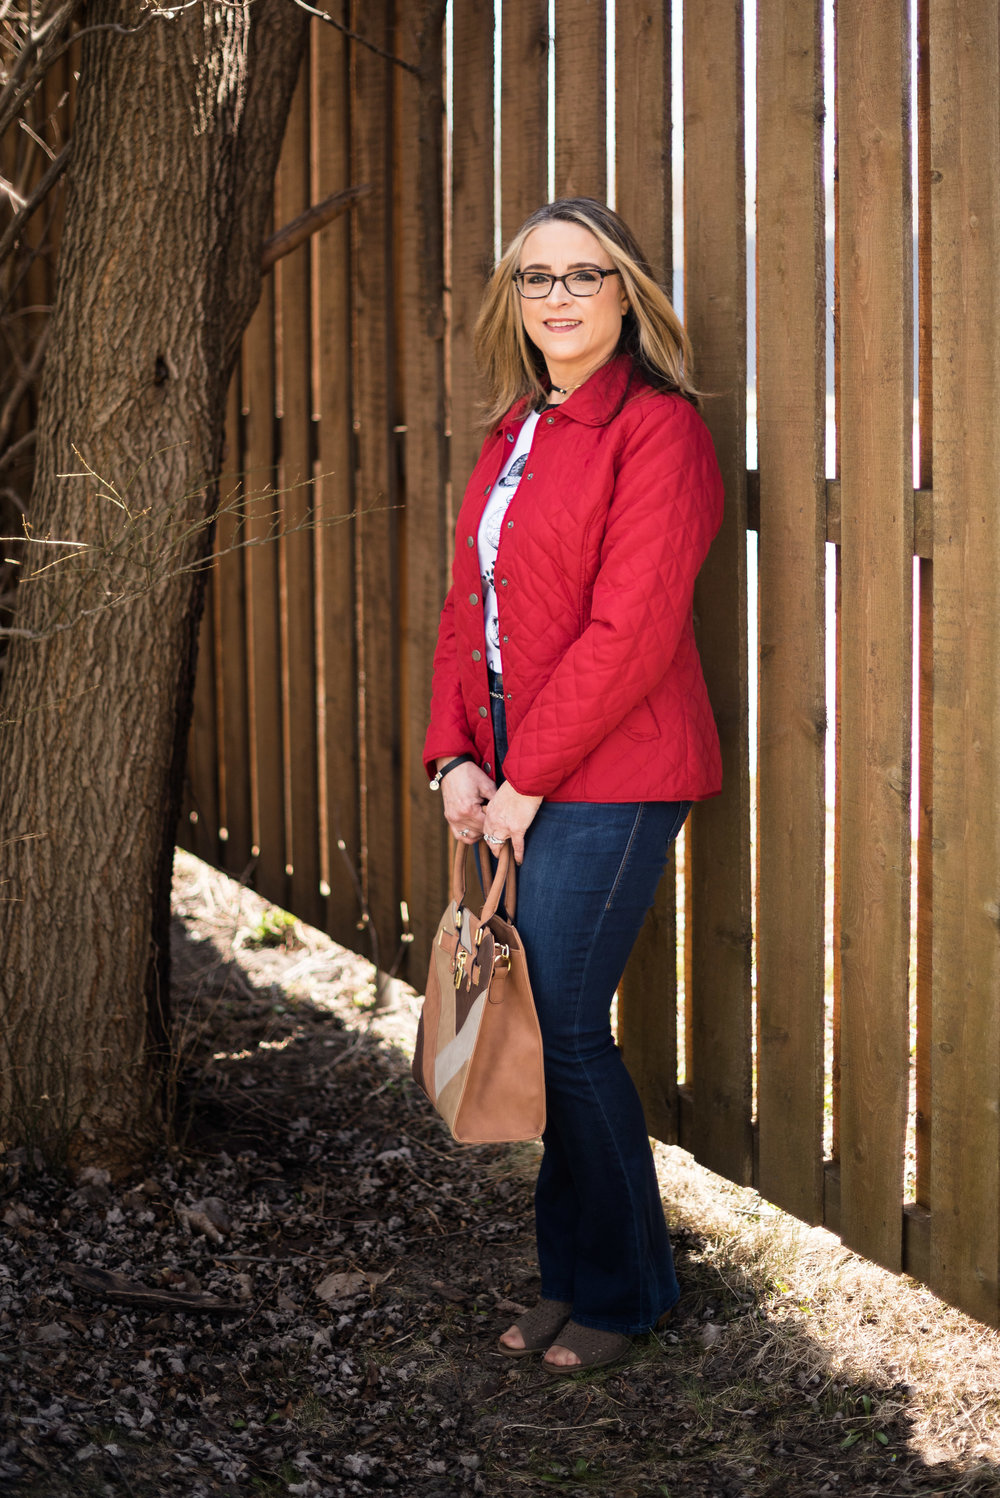 Spring transitions - Red Jacket outfit